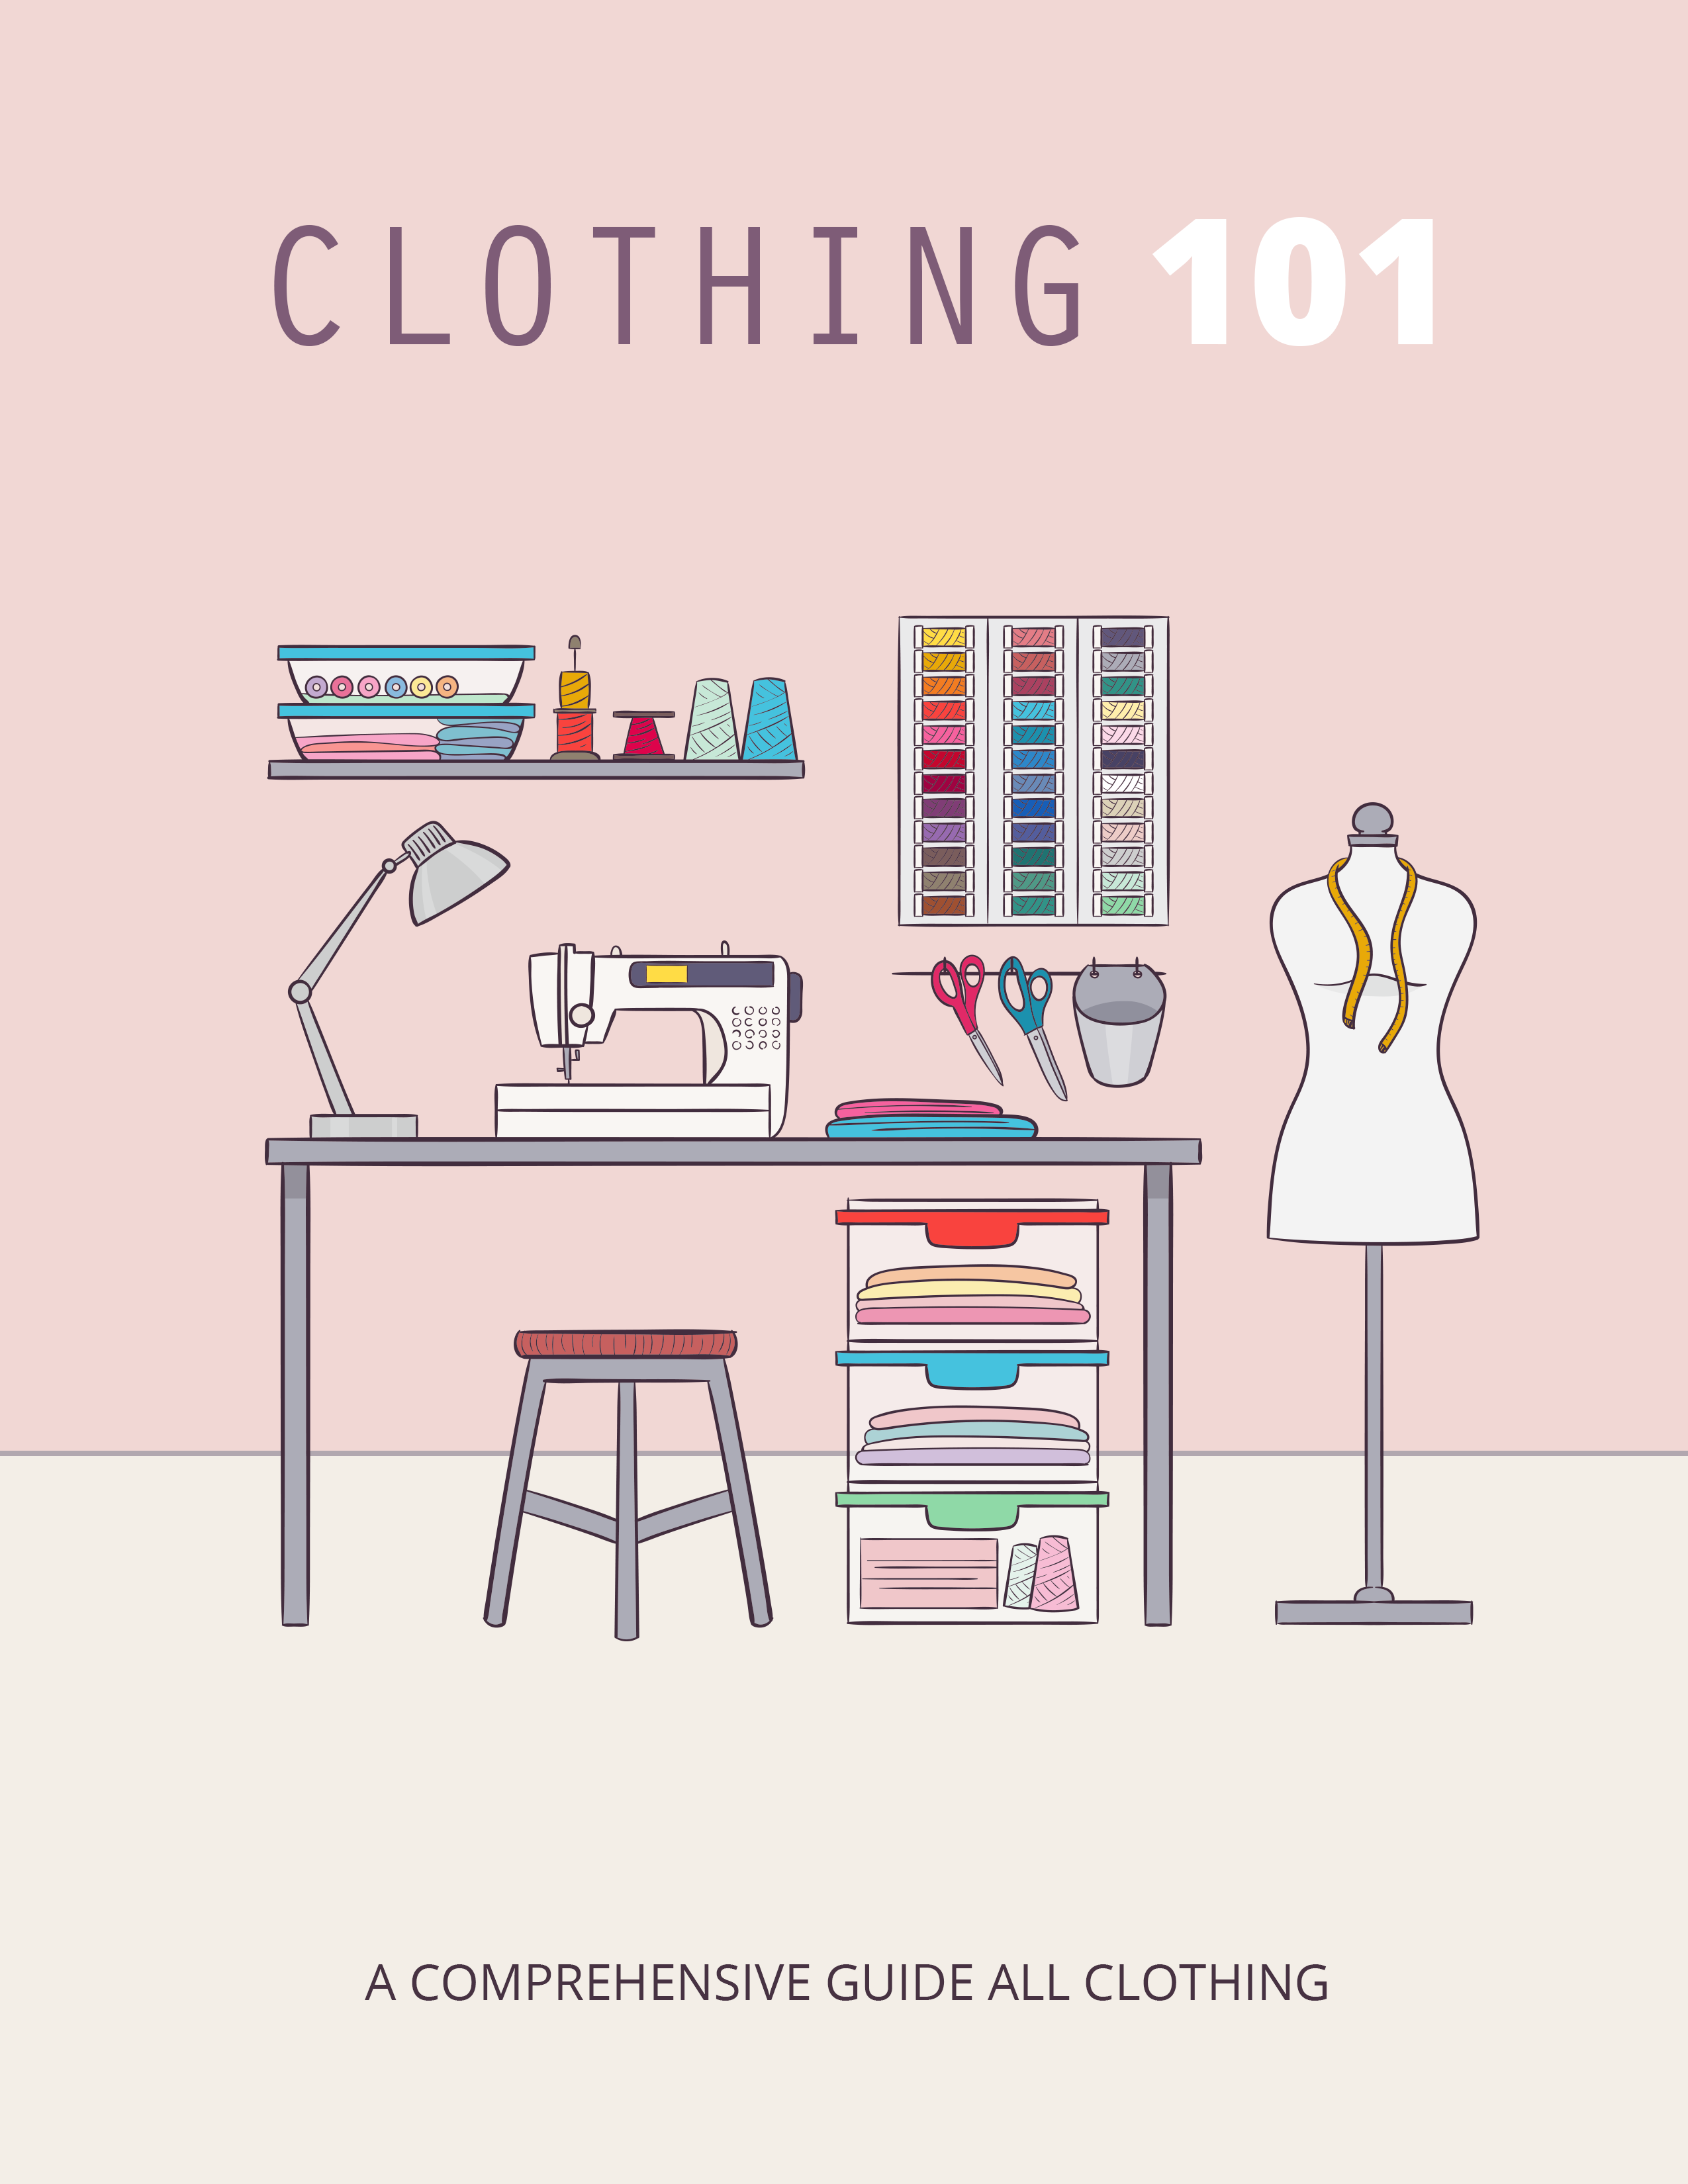 Clothing 101 (A Comprehensive Guide All Clothing) Ebook's Ebook Image